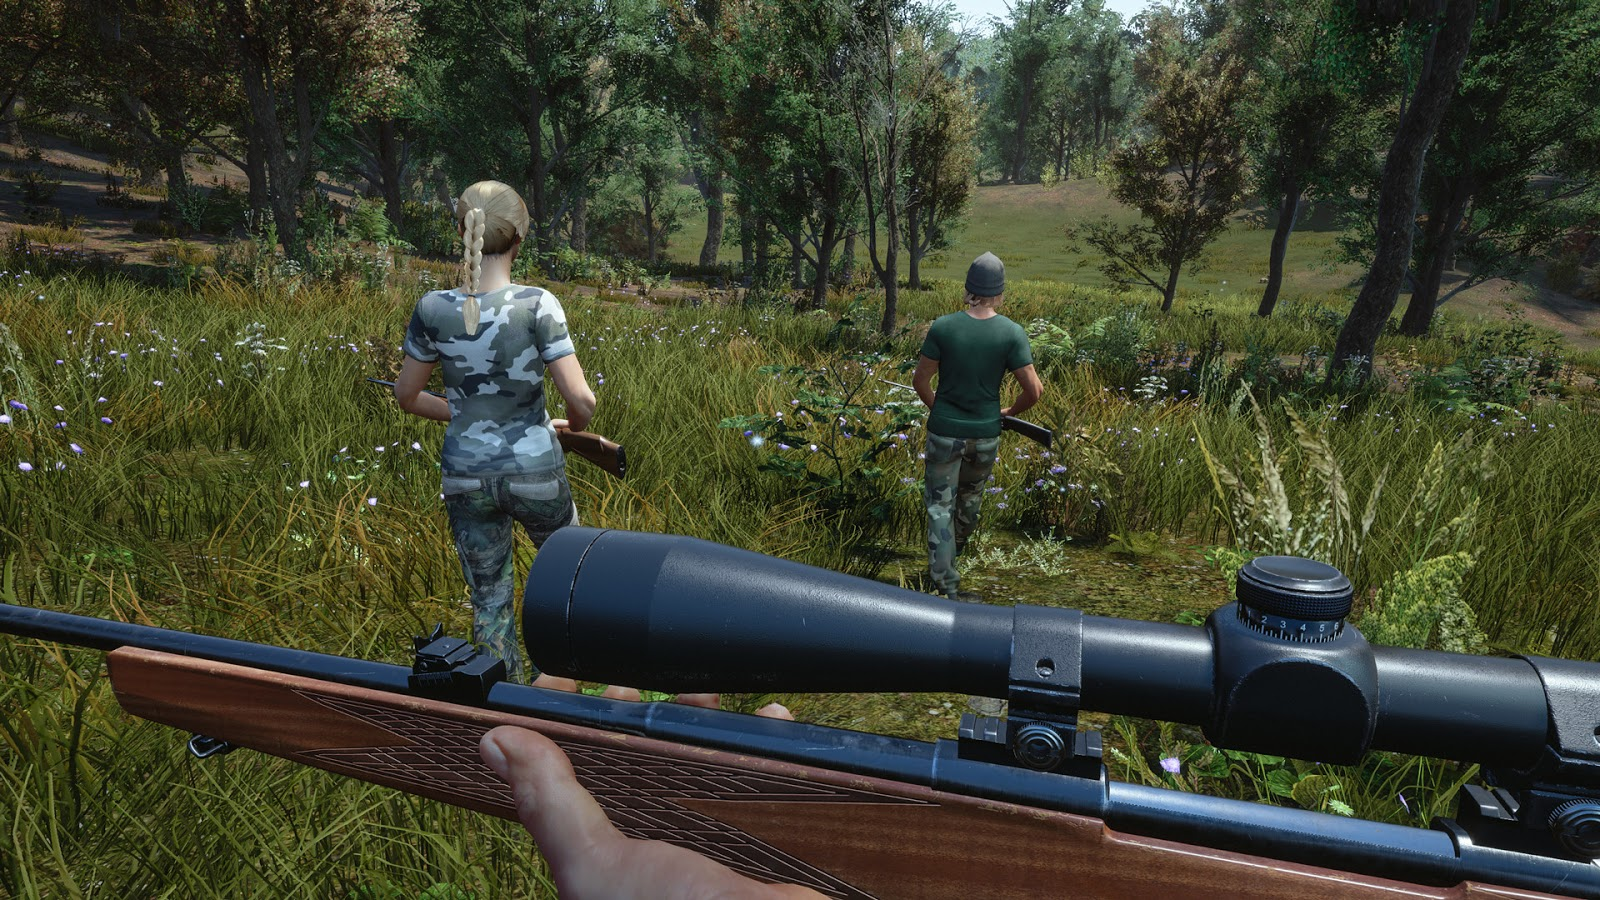 New Games: HUNTING SIMULATOR (PC, PS4, Xbox One) | The Entertainment Factor